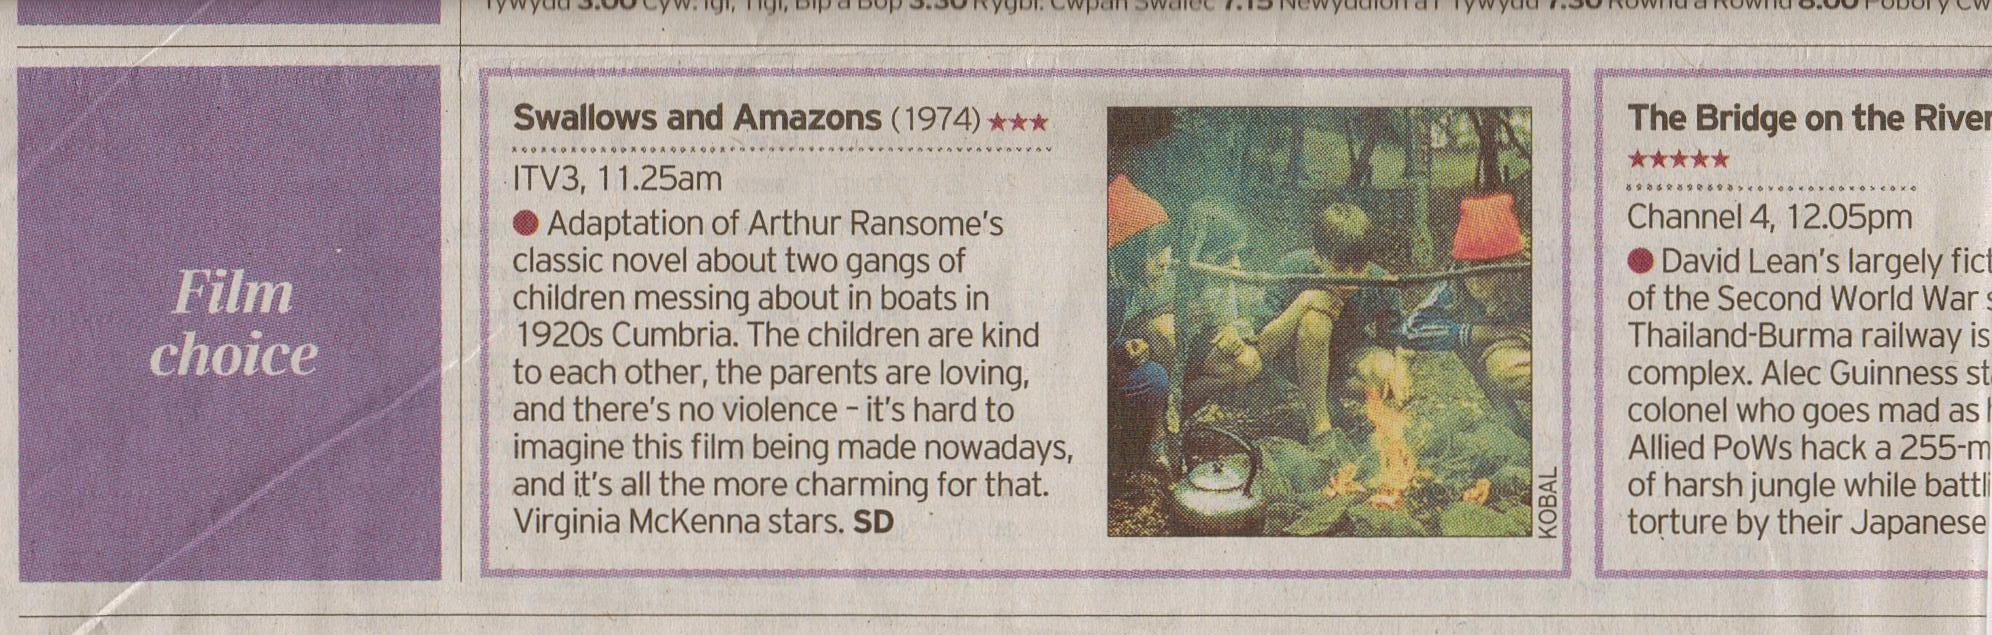 'Swallows and Amazons' broadcast on ITV3